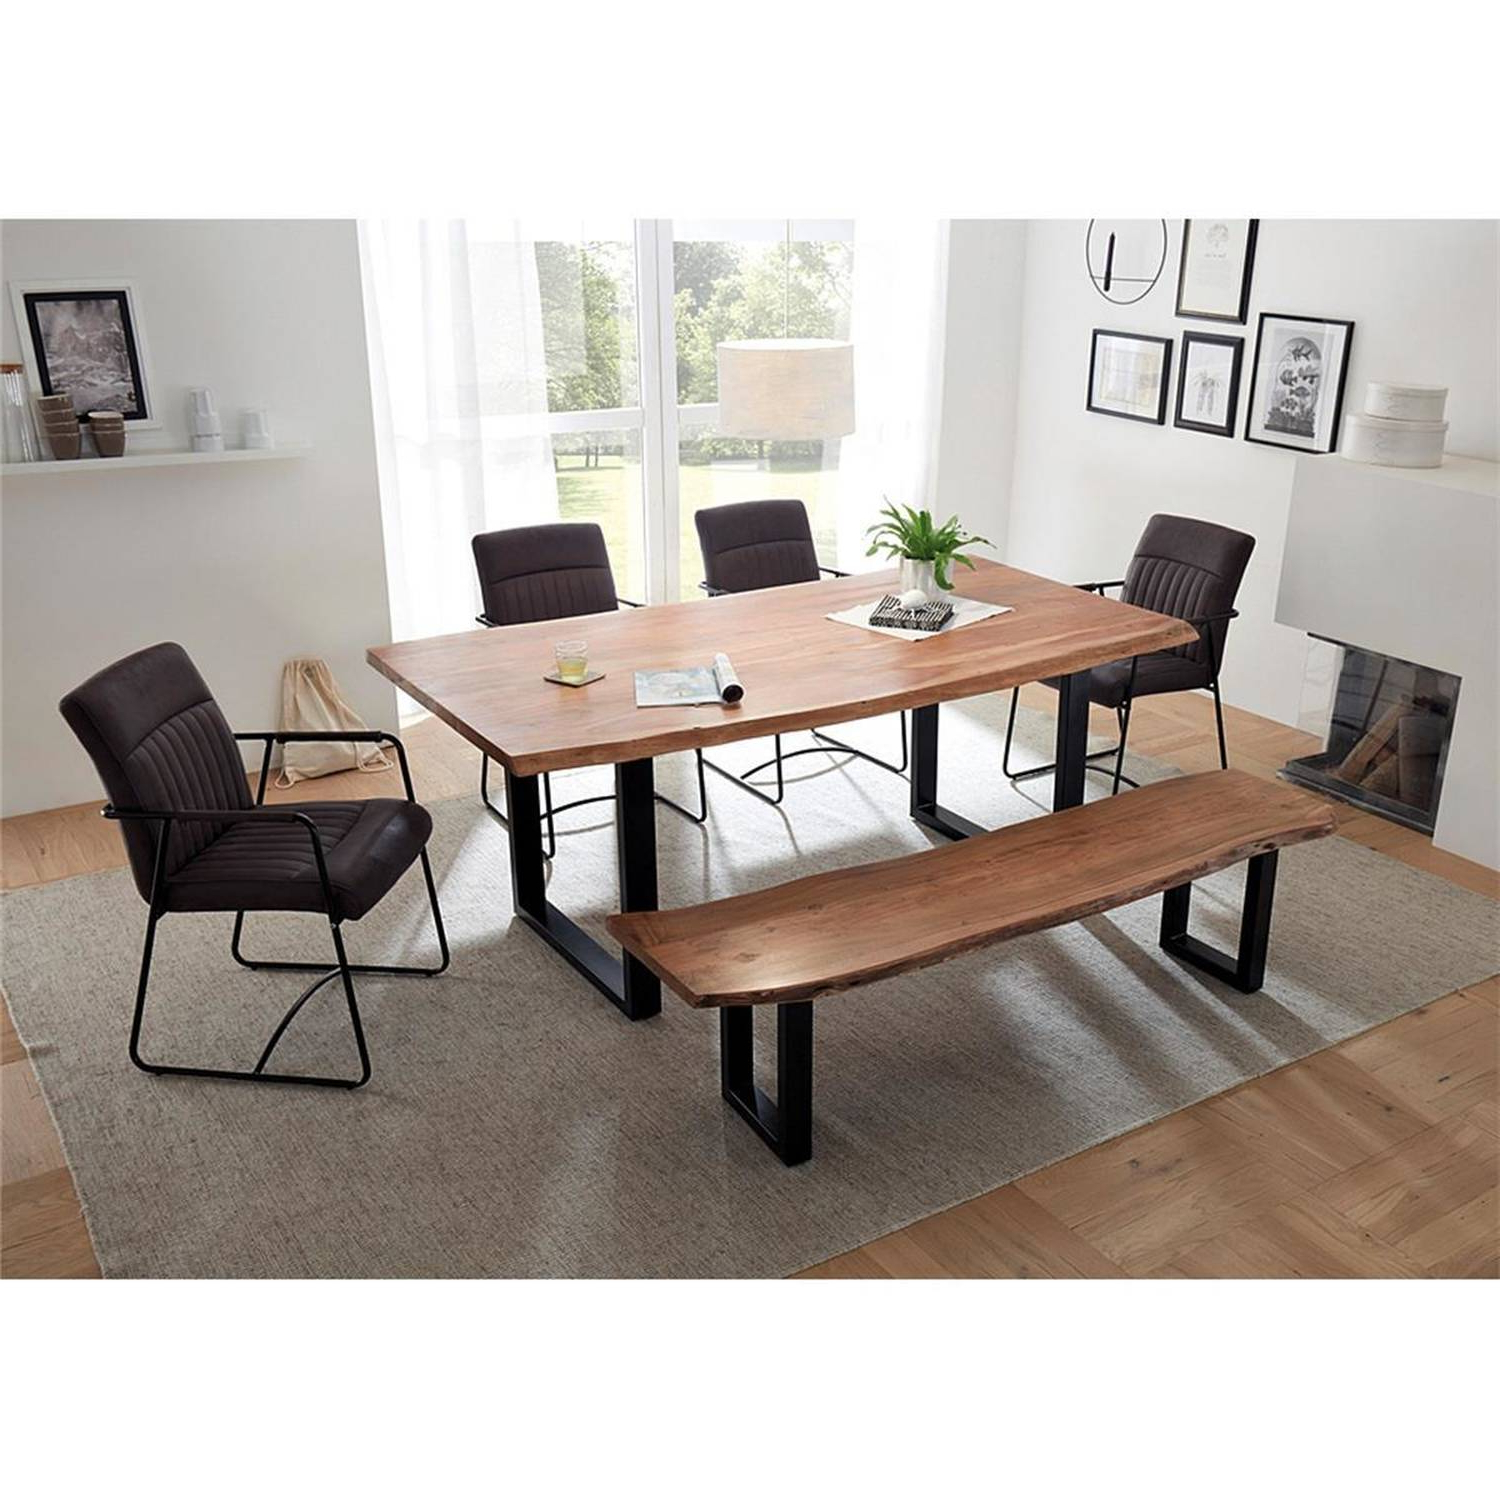 Dining Set Amsterdam 119 Consisting Of Table And Bench Made Of Solid Acacia With Tree Edge, Armchairs With Artificial Leather In Gray Pertaining To Fashionable Popel Armchairs (View 13 of 20)